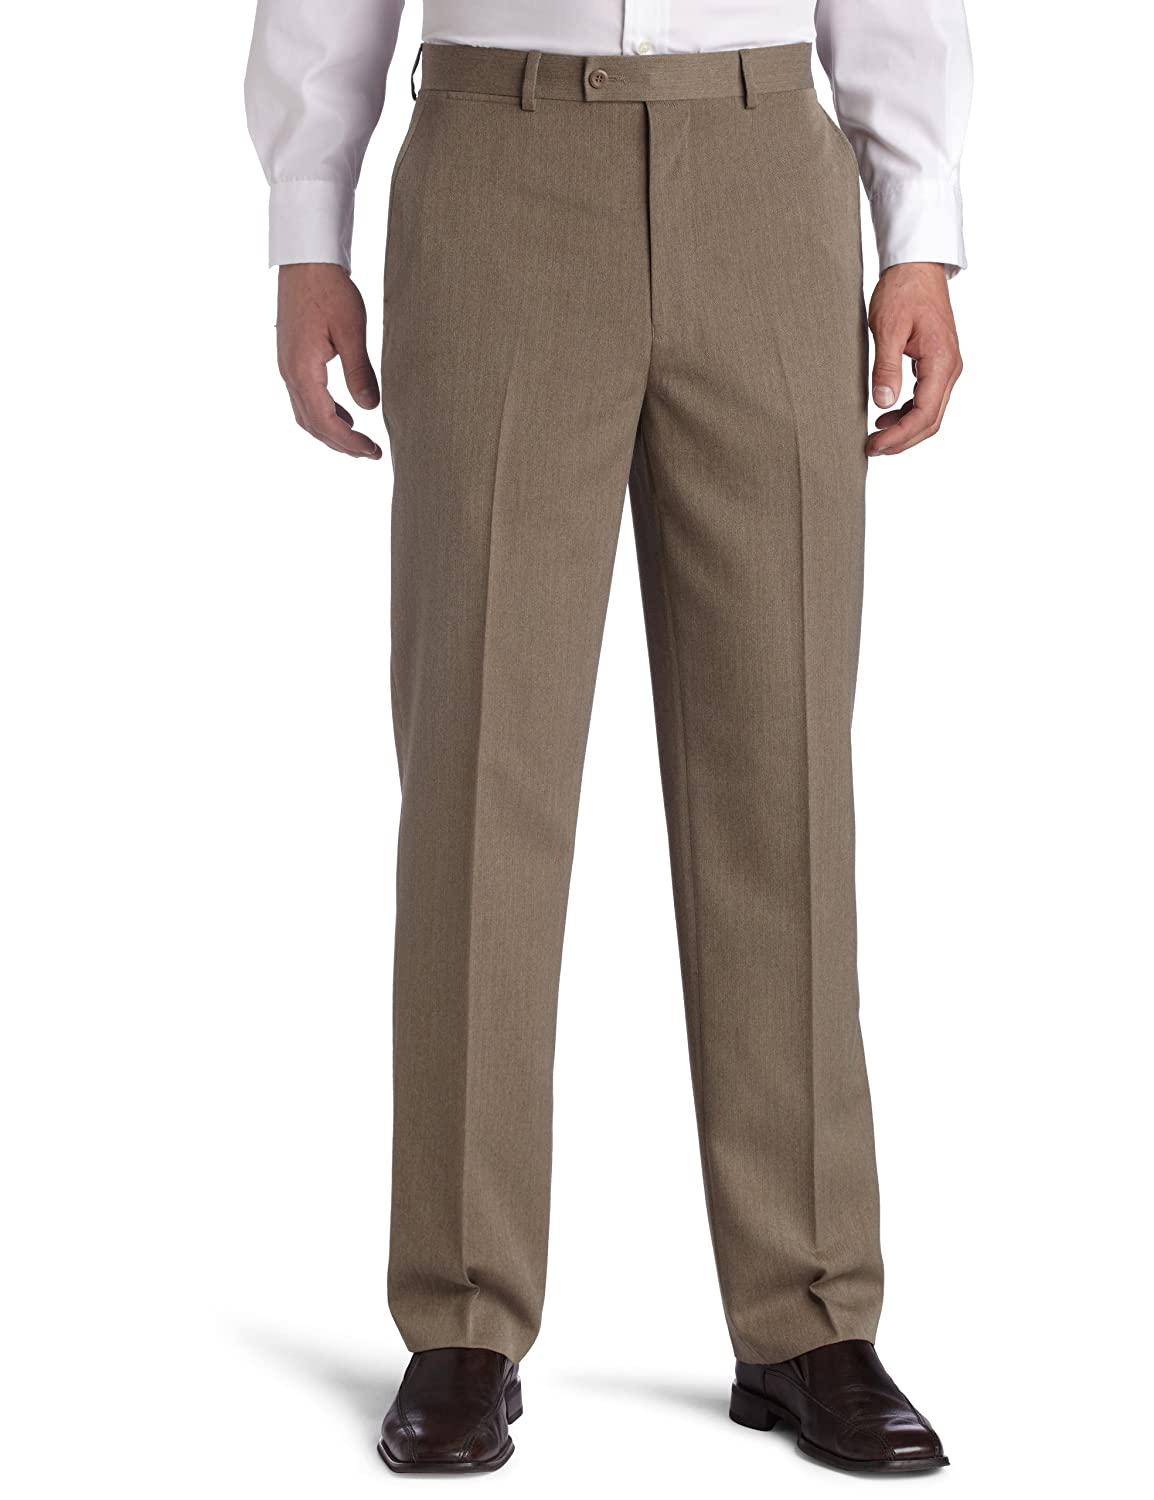 Amazon One Day Deal: Up to 65% Off Men's Dress Pants